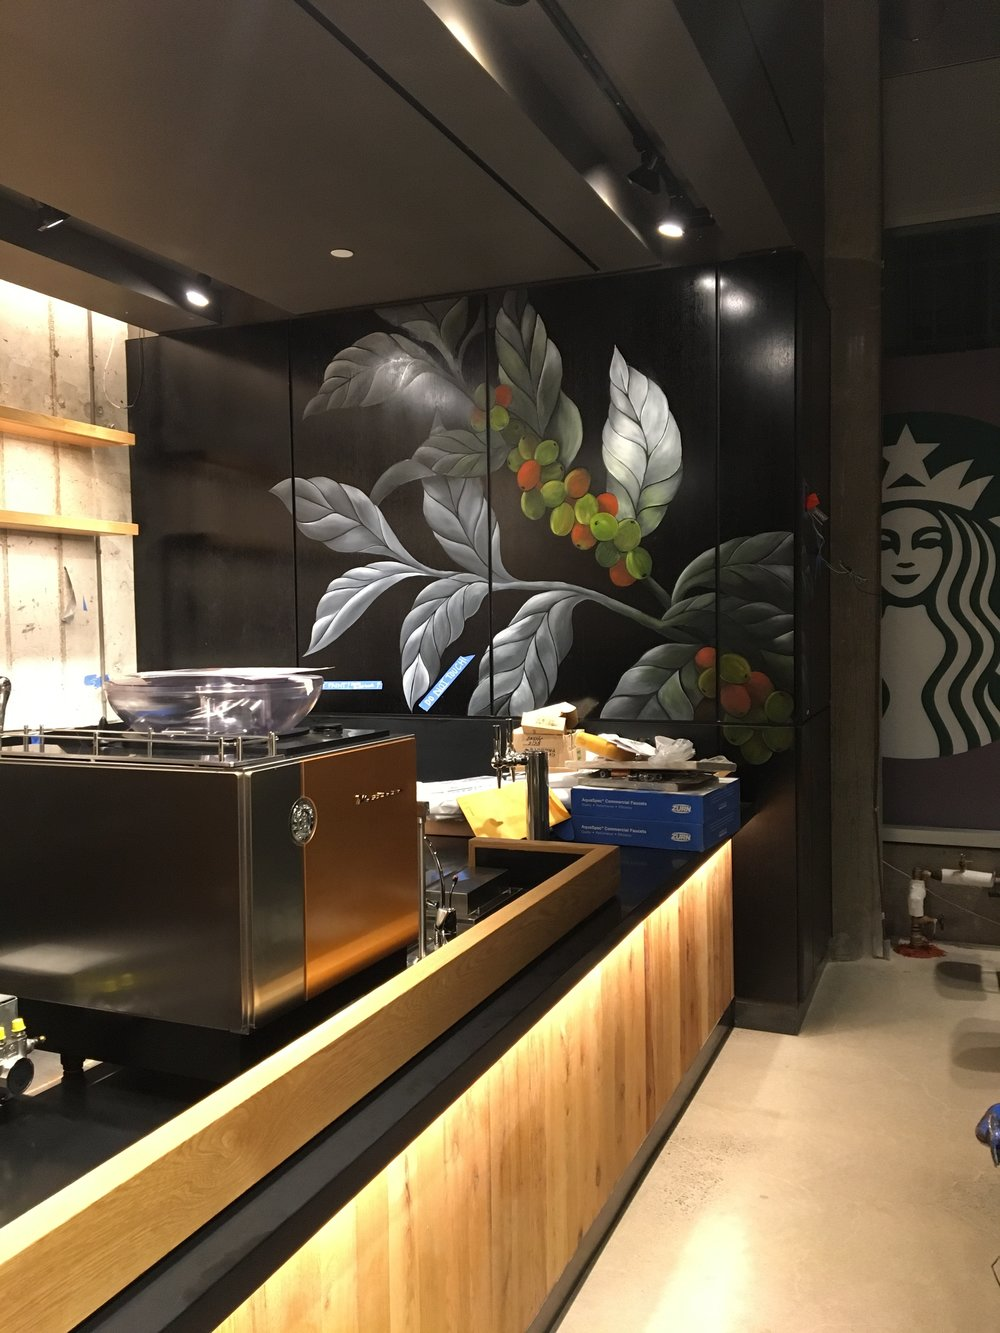 Starbucks - NYC - Oil Painting on panels